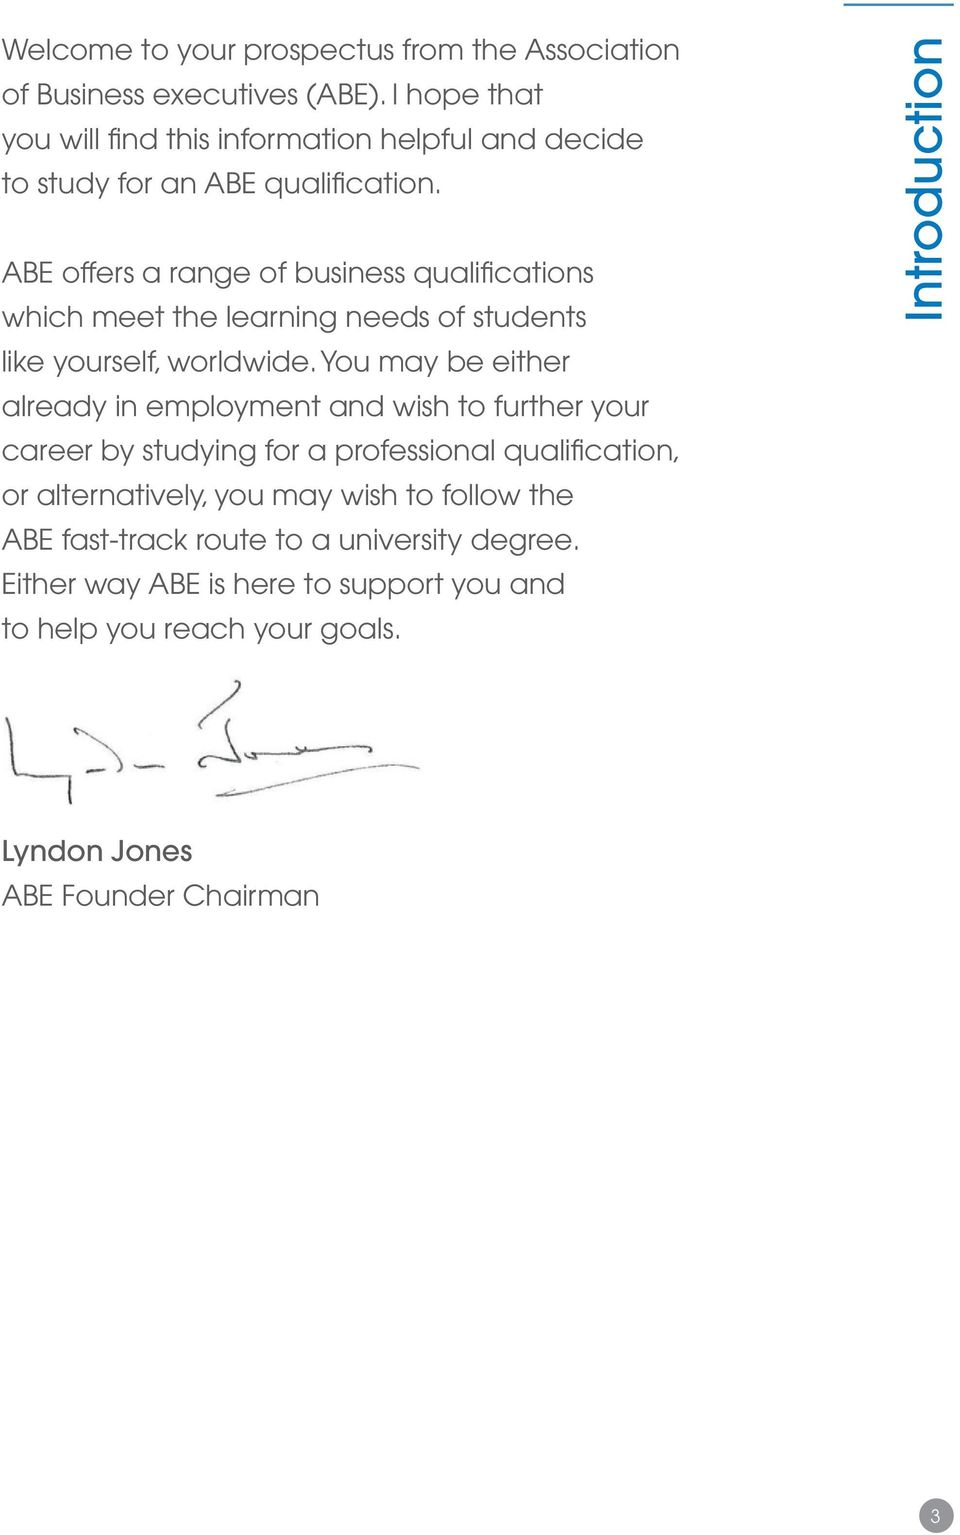 ABE offers a range of business qualifications which meet the learning needs  of students like yourself